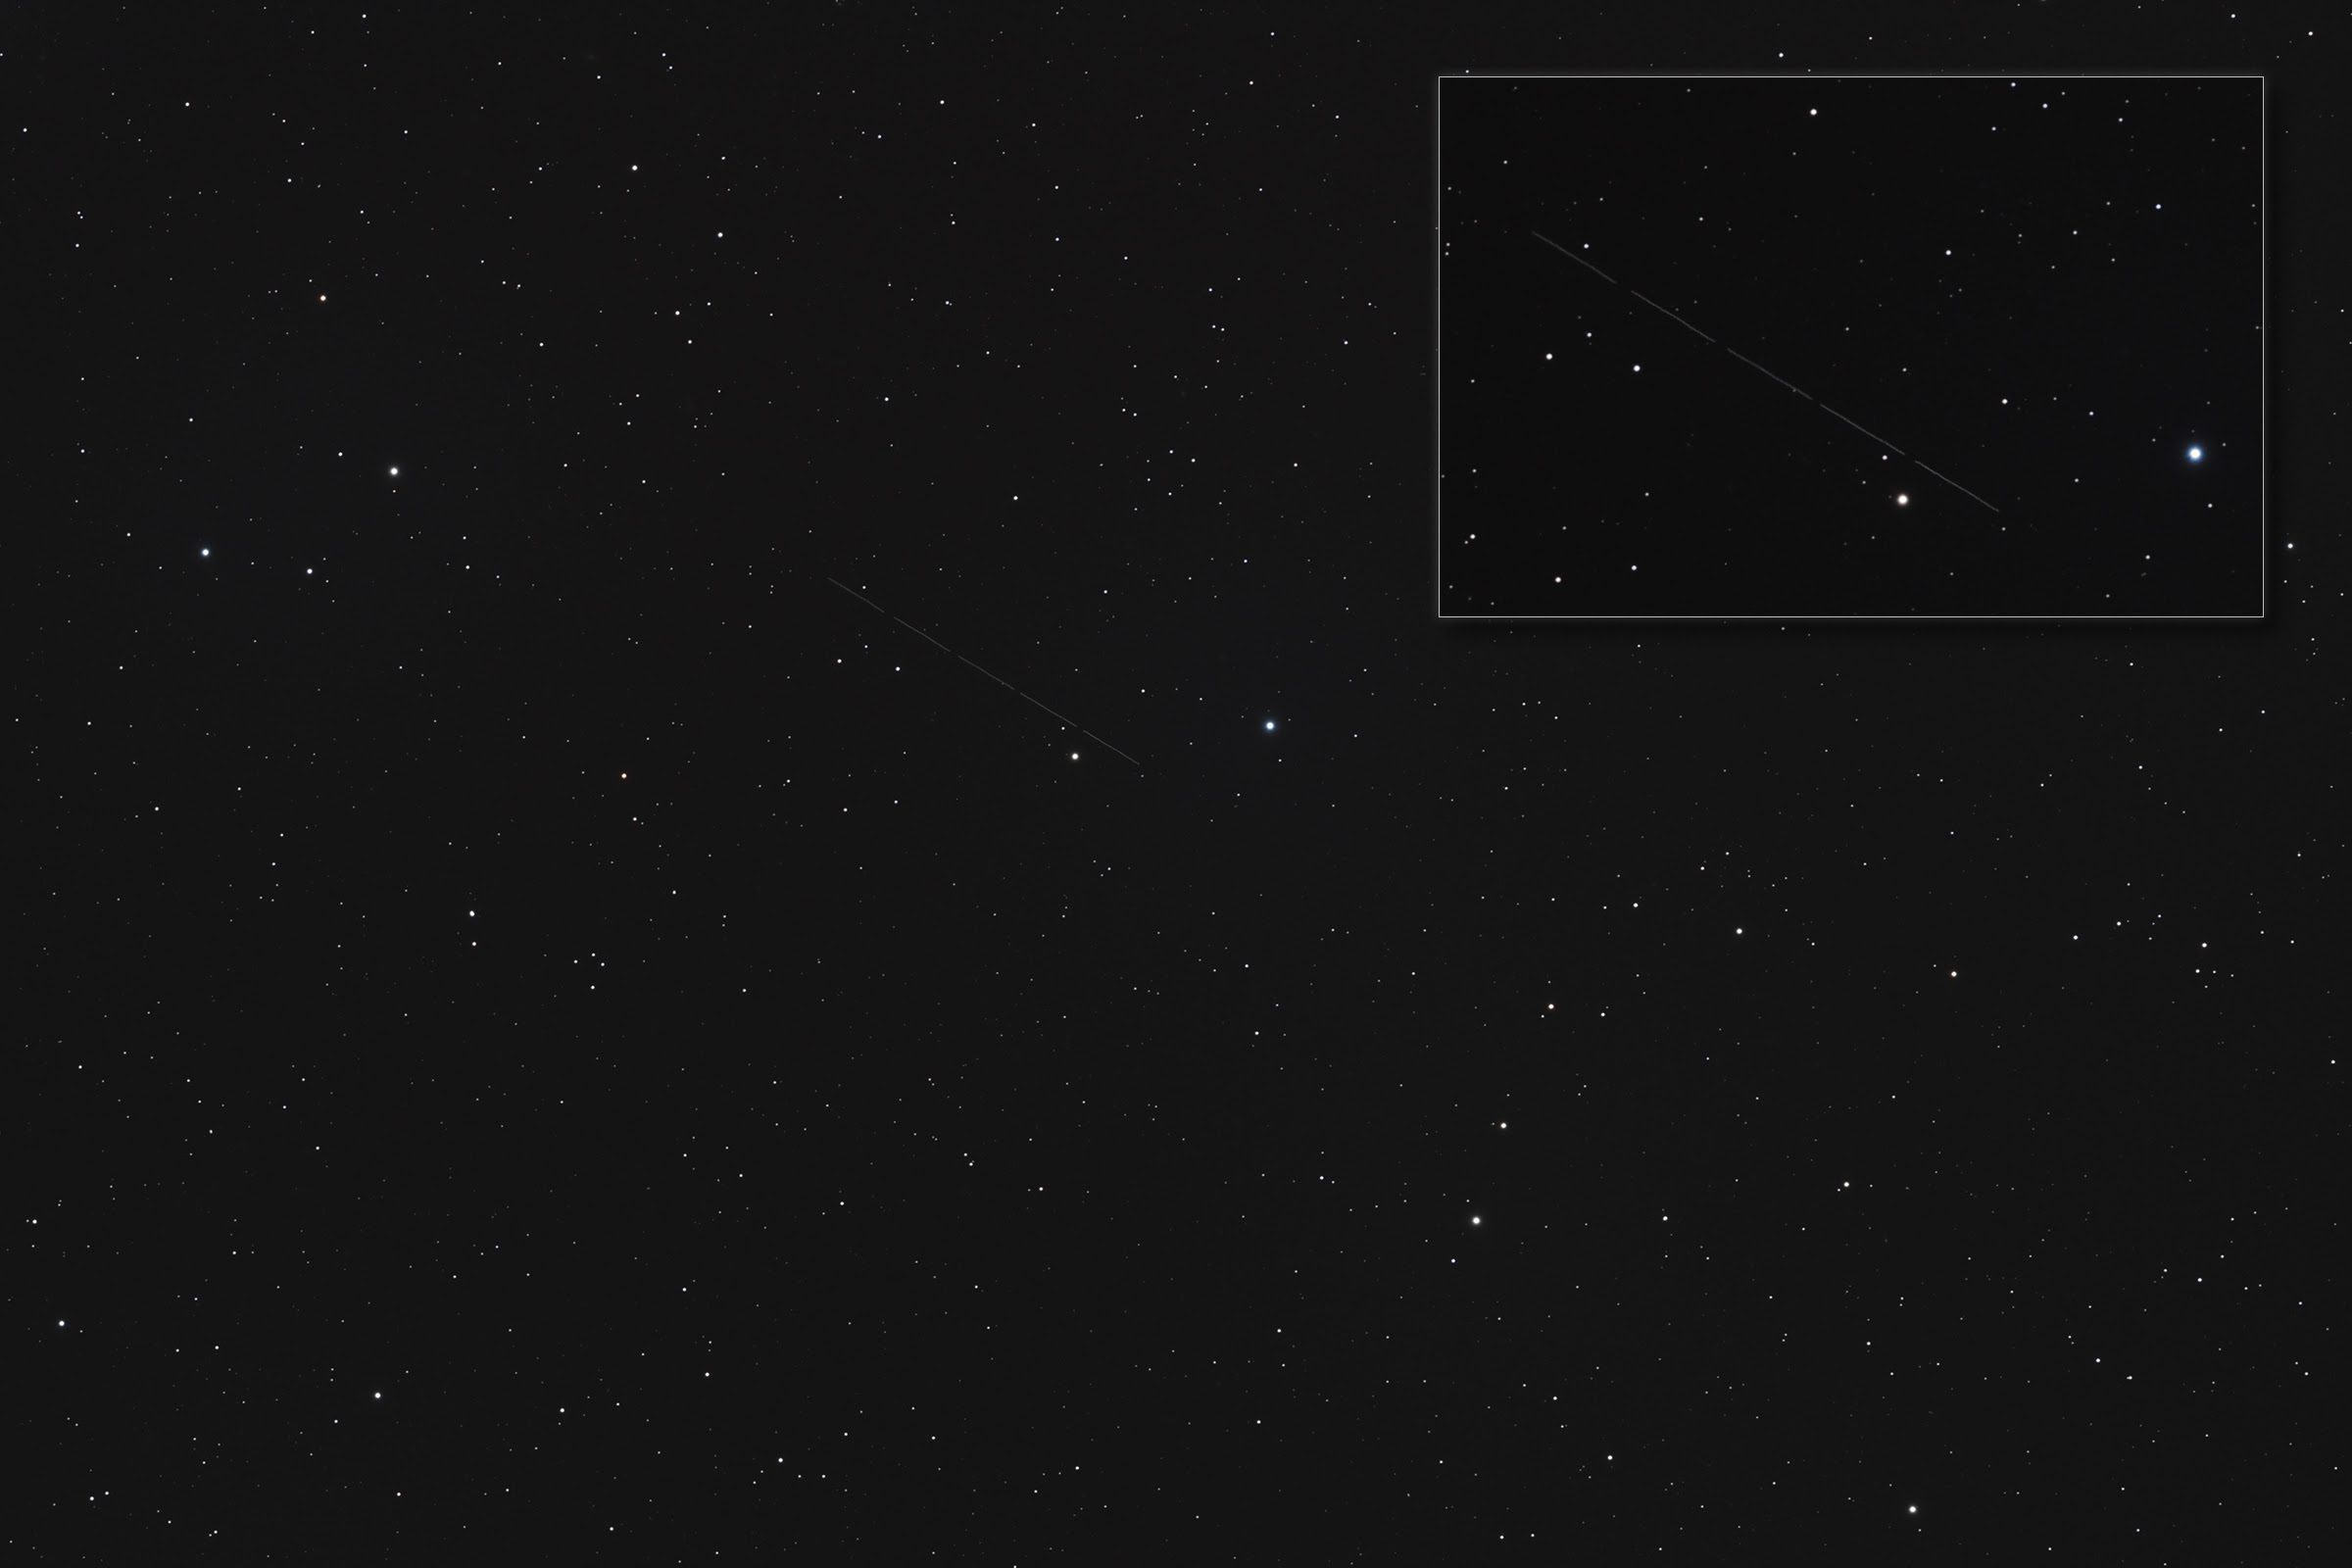 3200 Phaethon nearing its close approach to Earth